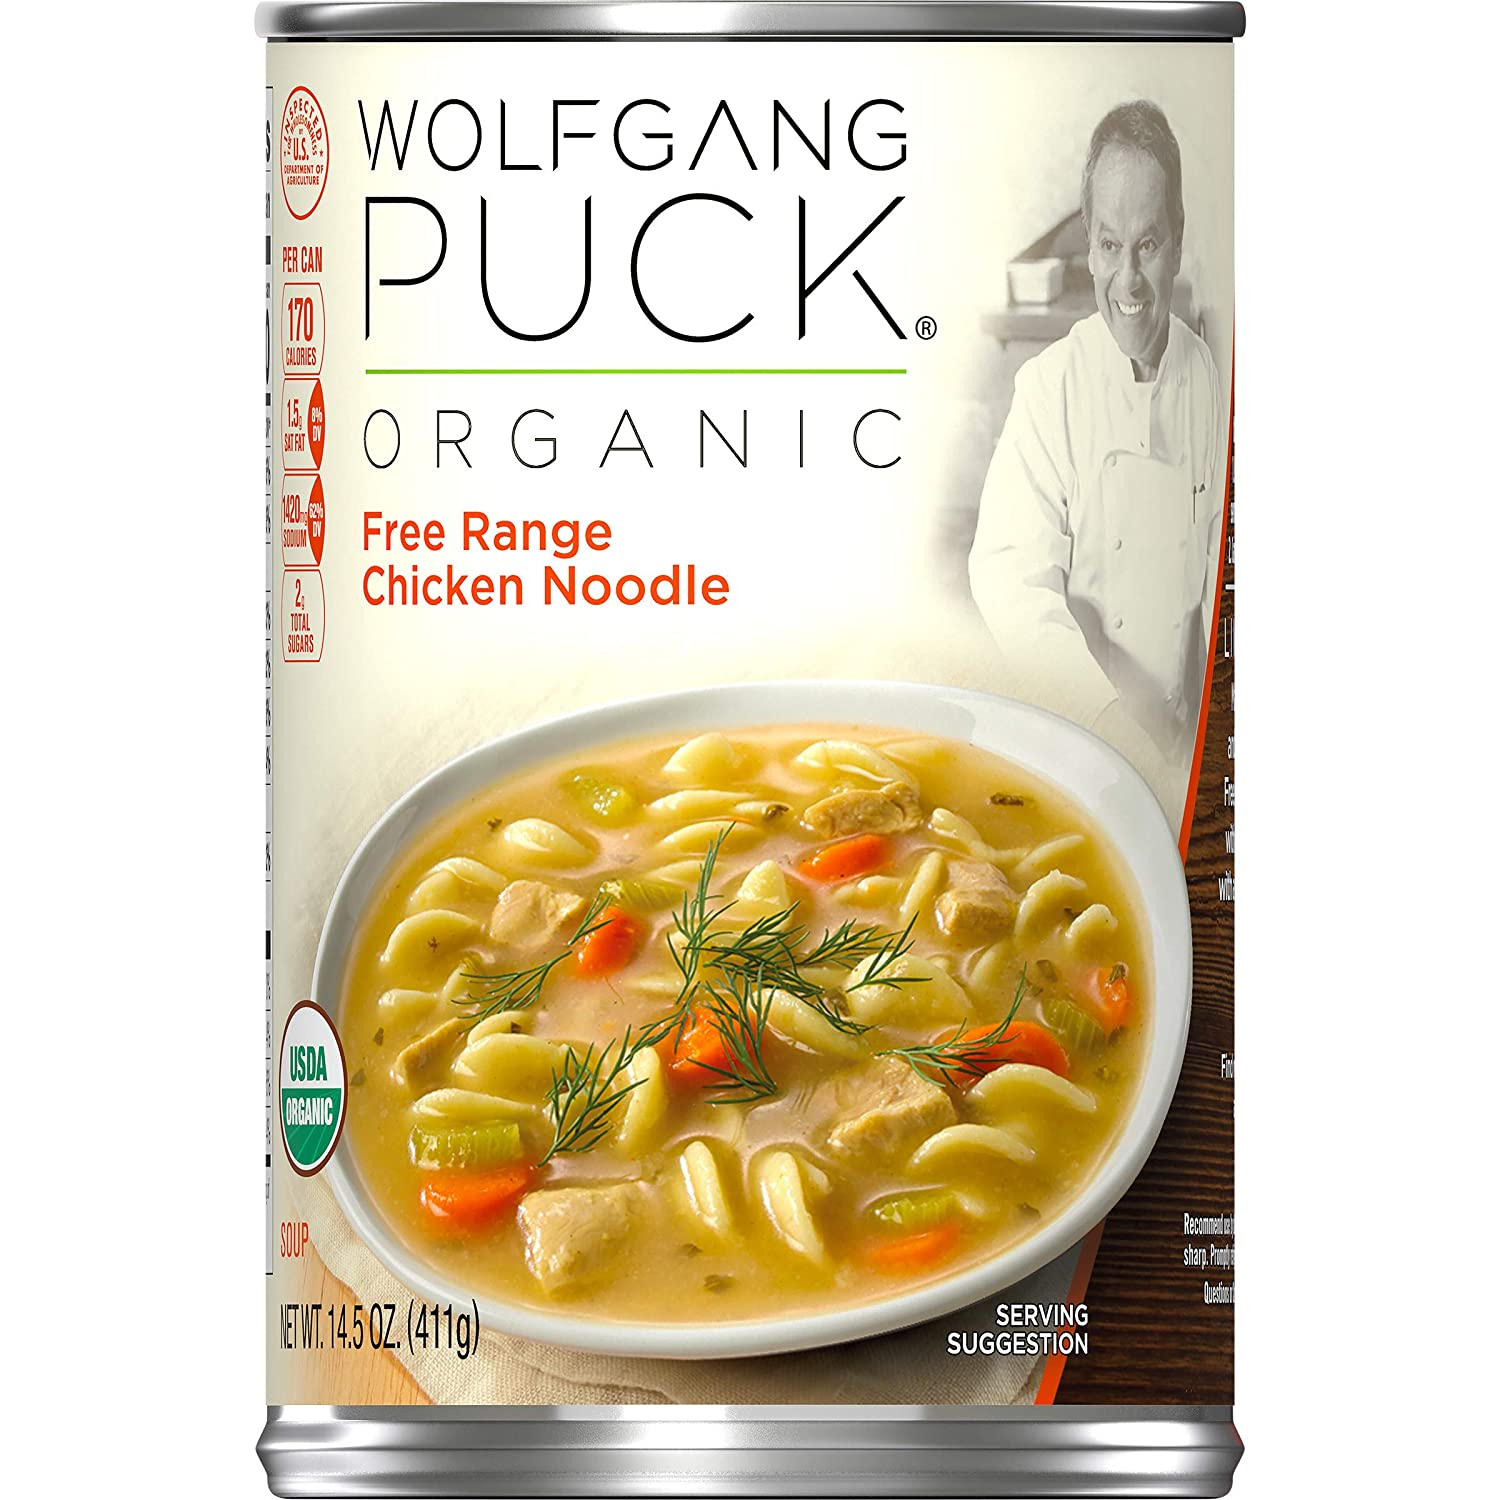 Wolfgang Puck Organic Free Range Chicken Noodle Soup, 14.5 oz. Can (PACK OF 12)